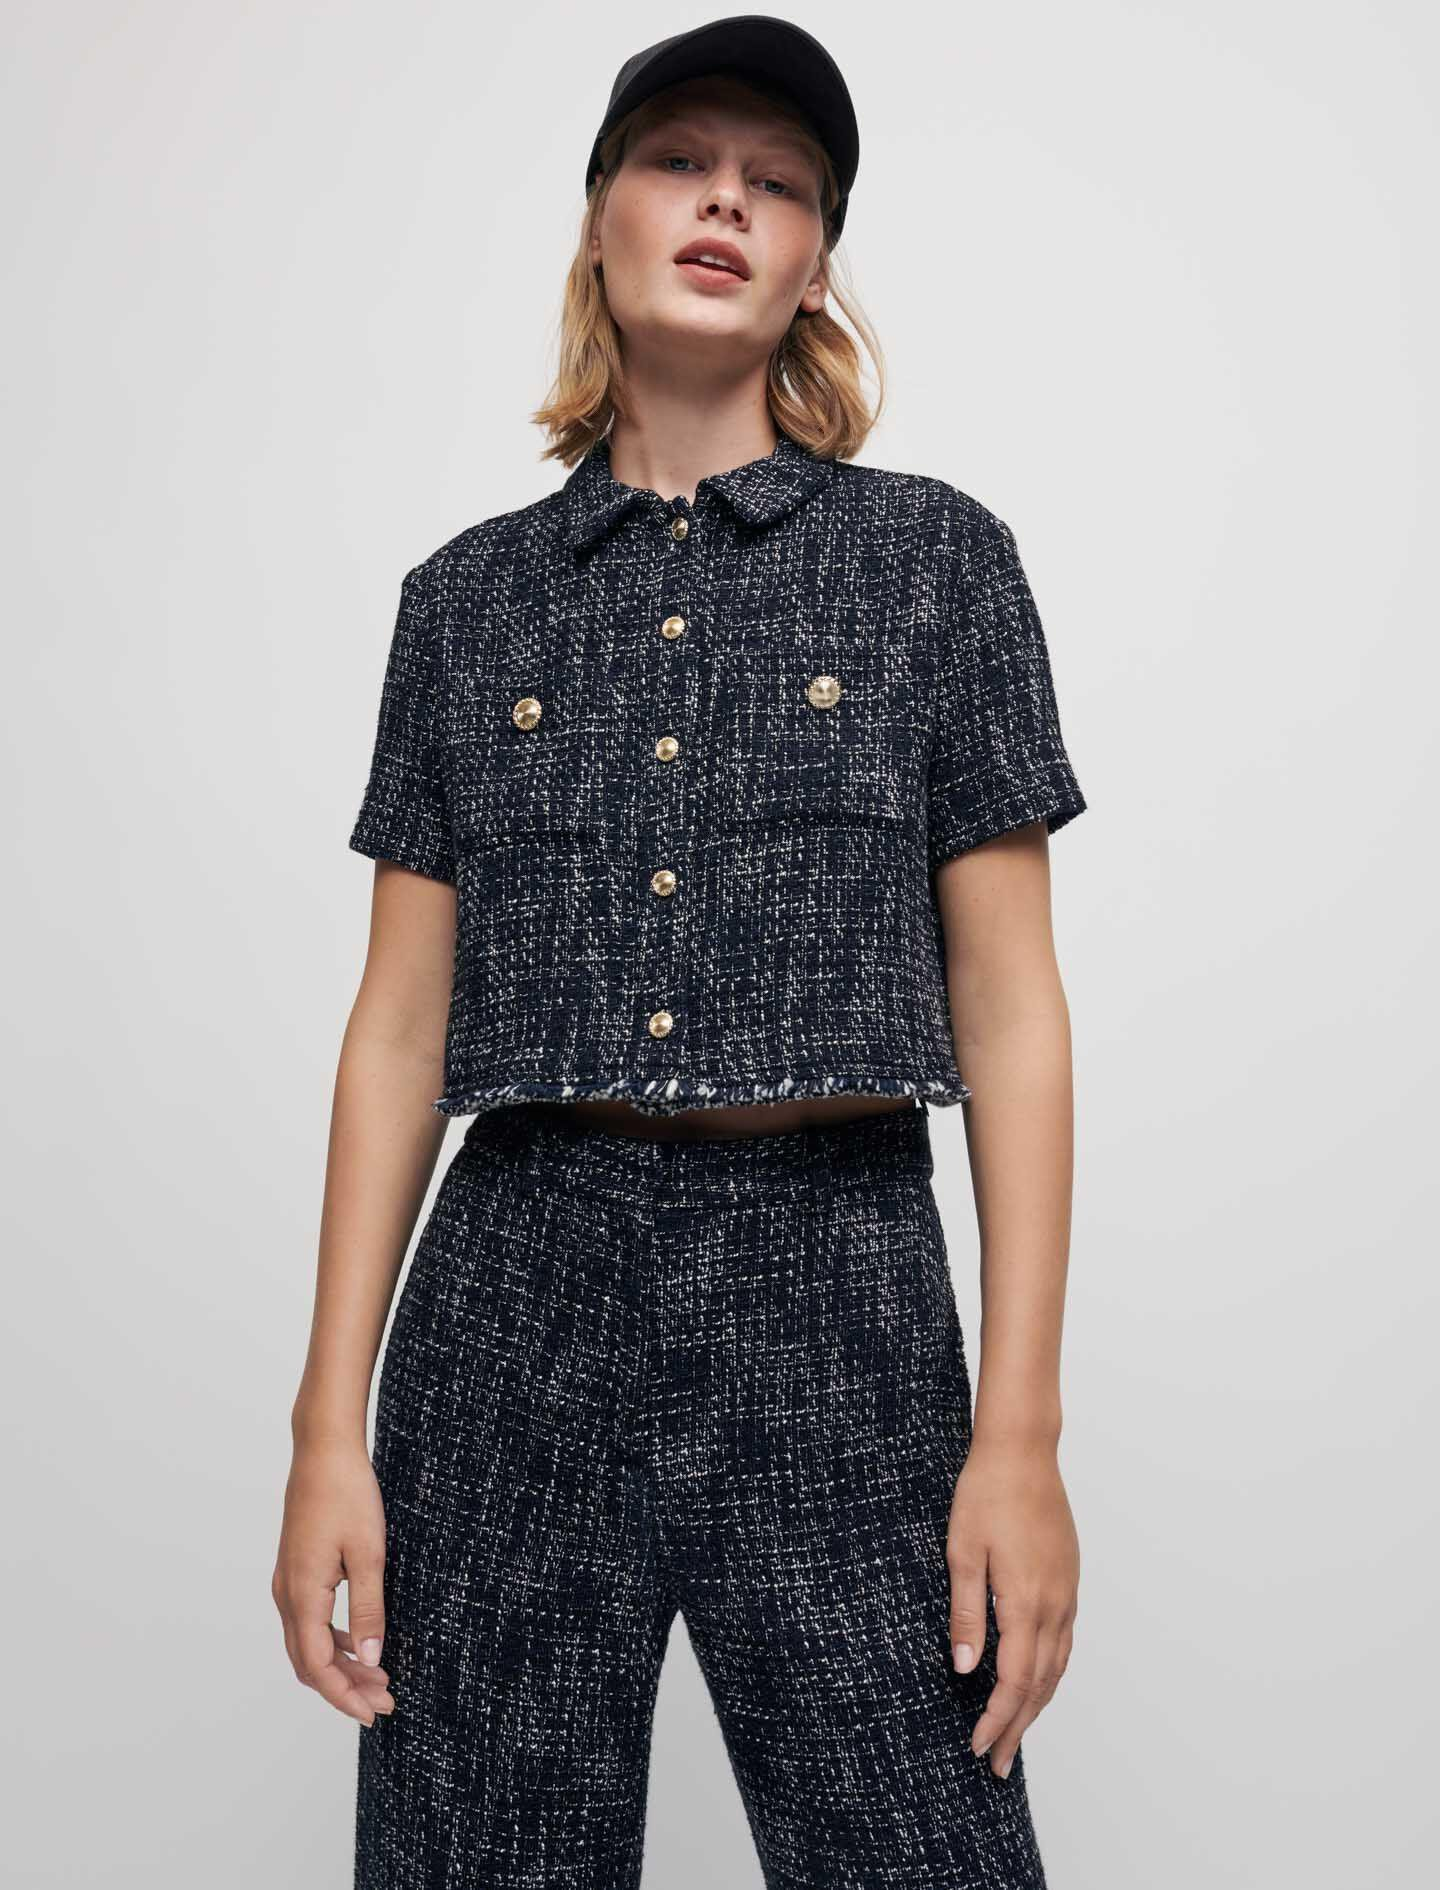 TWEED-STYLE CROPPED SHIRT